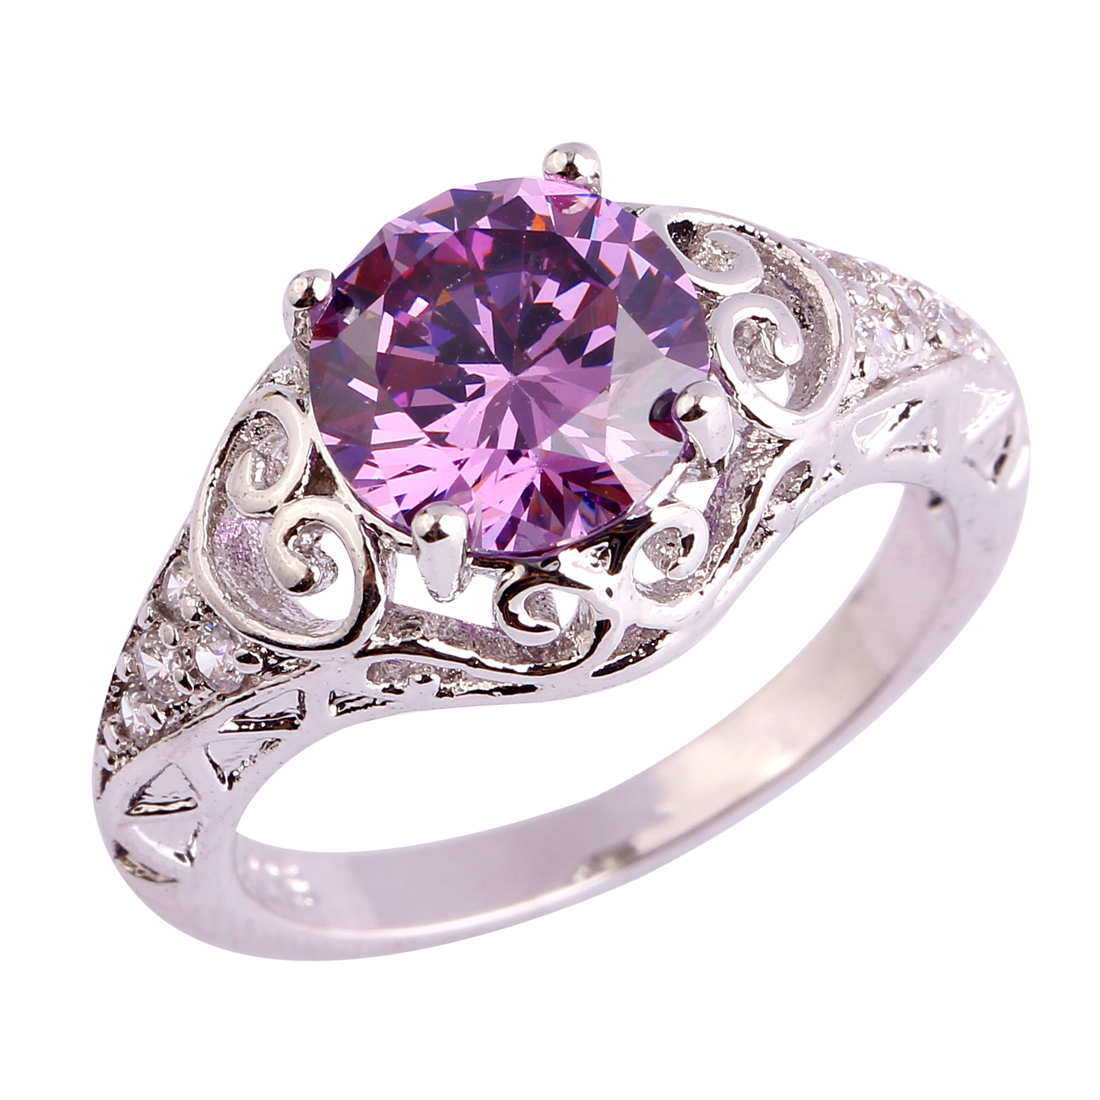 AAA CZ Wholesale Women Men Ring Plated Silver Ring Size 6 7 8 9 10 11 Free Shipping Hollow Out Purple Jewelry